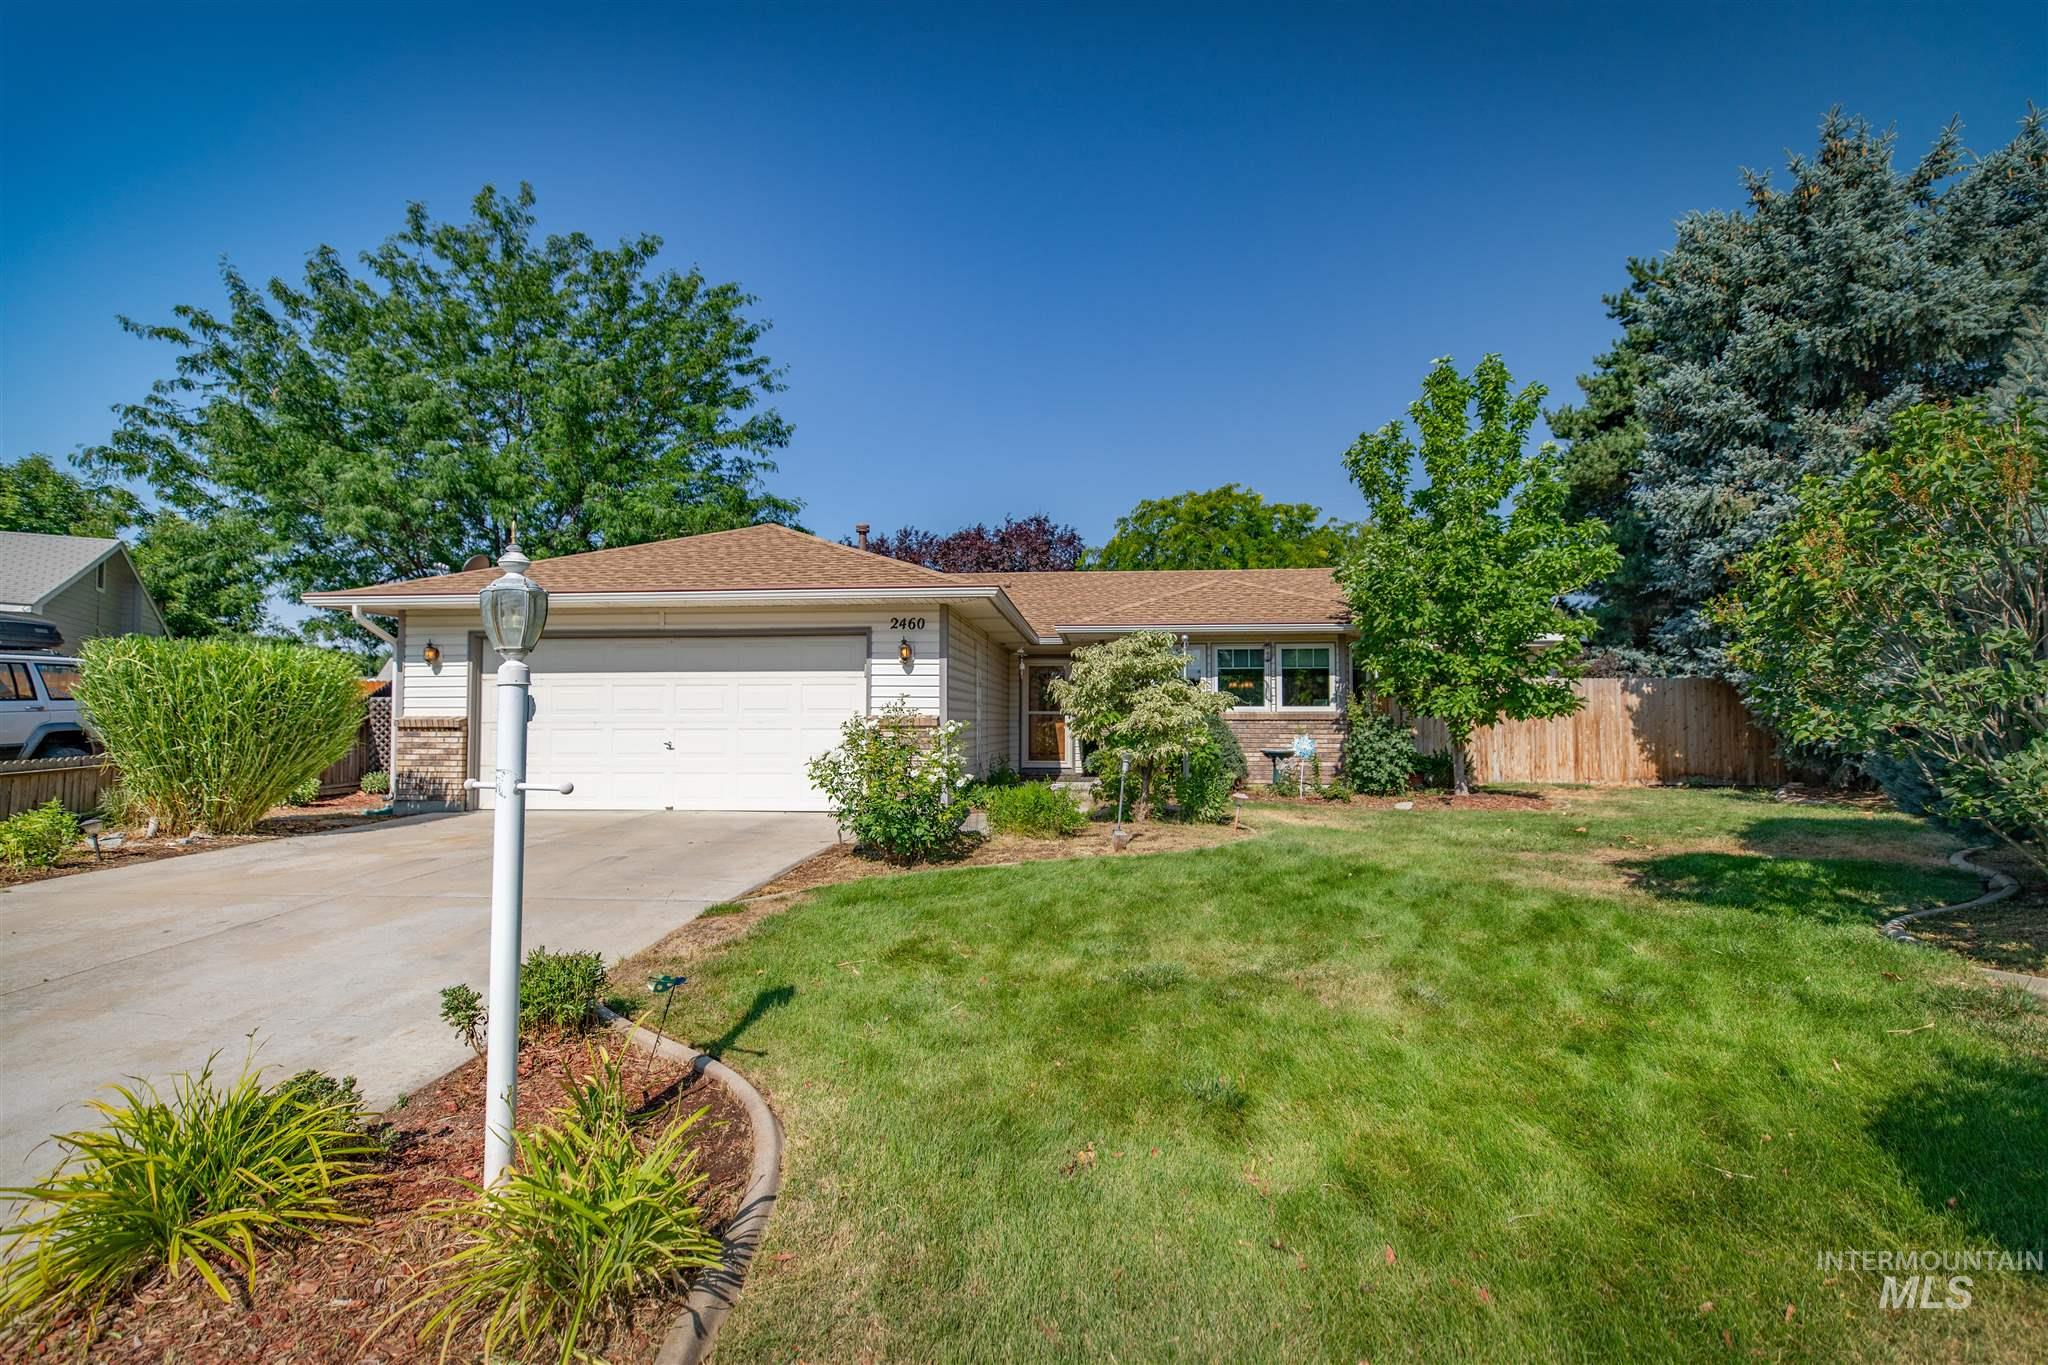 Welcome~Single Level Home in the Heart of Meridian Id. Sellers are 2nd home owners & have lovingly maintained the home. New roof in 2016, New AC unit, & Mstr Walk in shower, Anderson windows & doors. The Vaulted great room opens to the kitchen w/plenty of cabinets & counter space. The additional living room was an add on & has a gas fireplace. When you walk out the beautiful wooden doors to the back patio you step into an Oasis of landscaping & prior water features. (Easily revived). ALSO-no back neighbors.